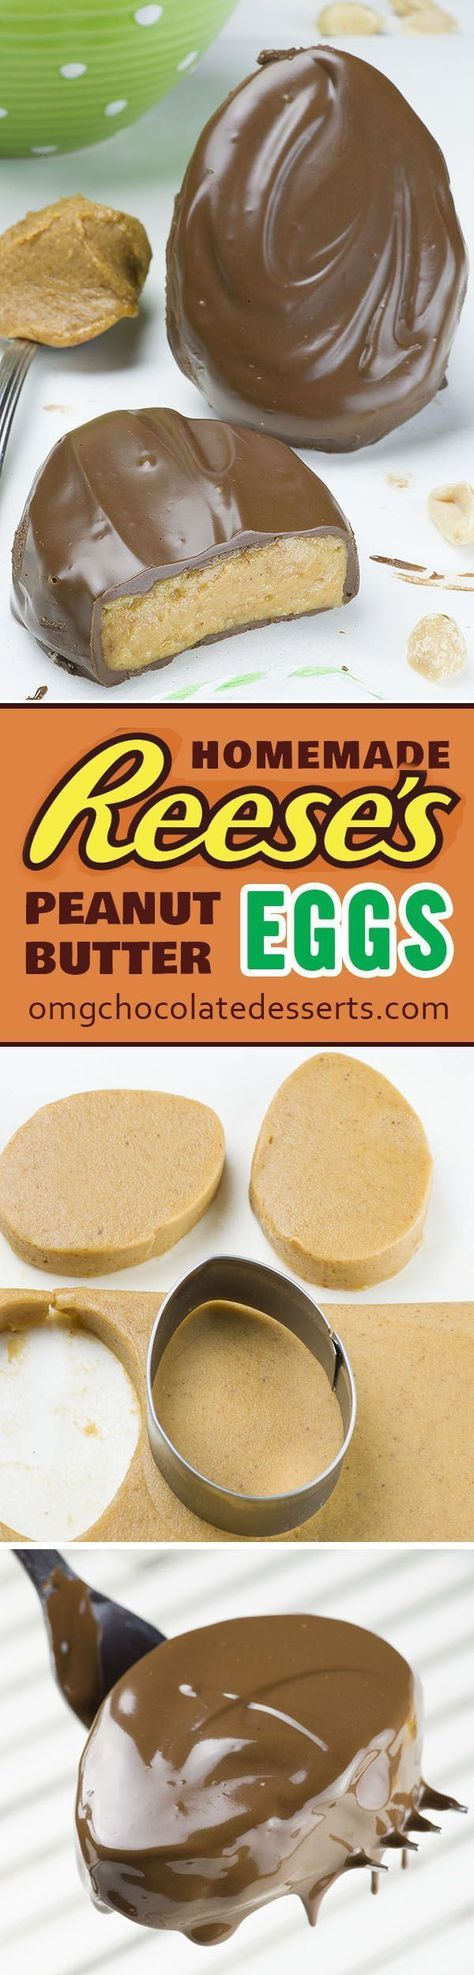 Homemade Reese's Eggs - simple, quick and easy no bake dessert recipe with peanut butter and chocolate , is perfect idea for Easter ea.